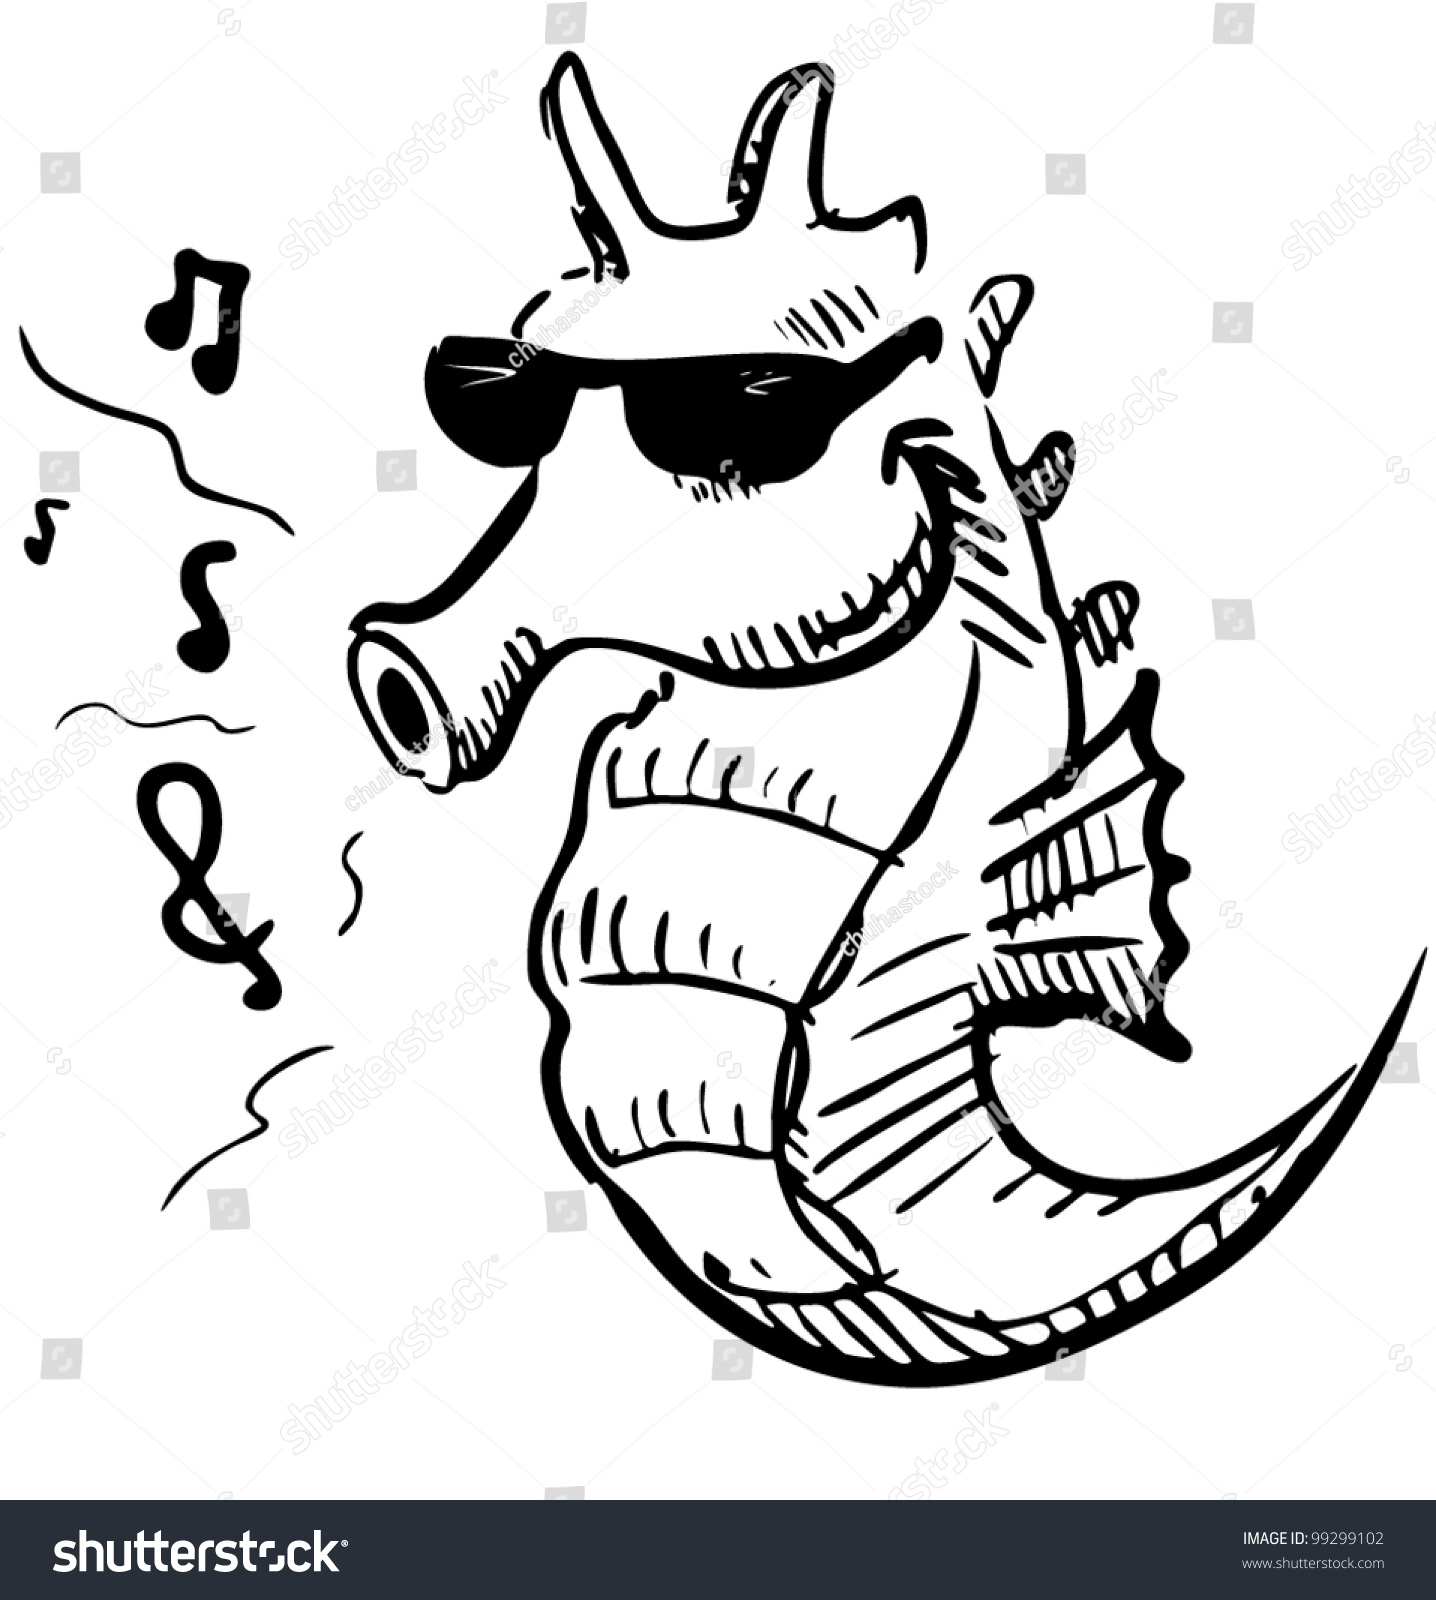 seahorse sunglasses whistling music hand drawing stock vector